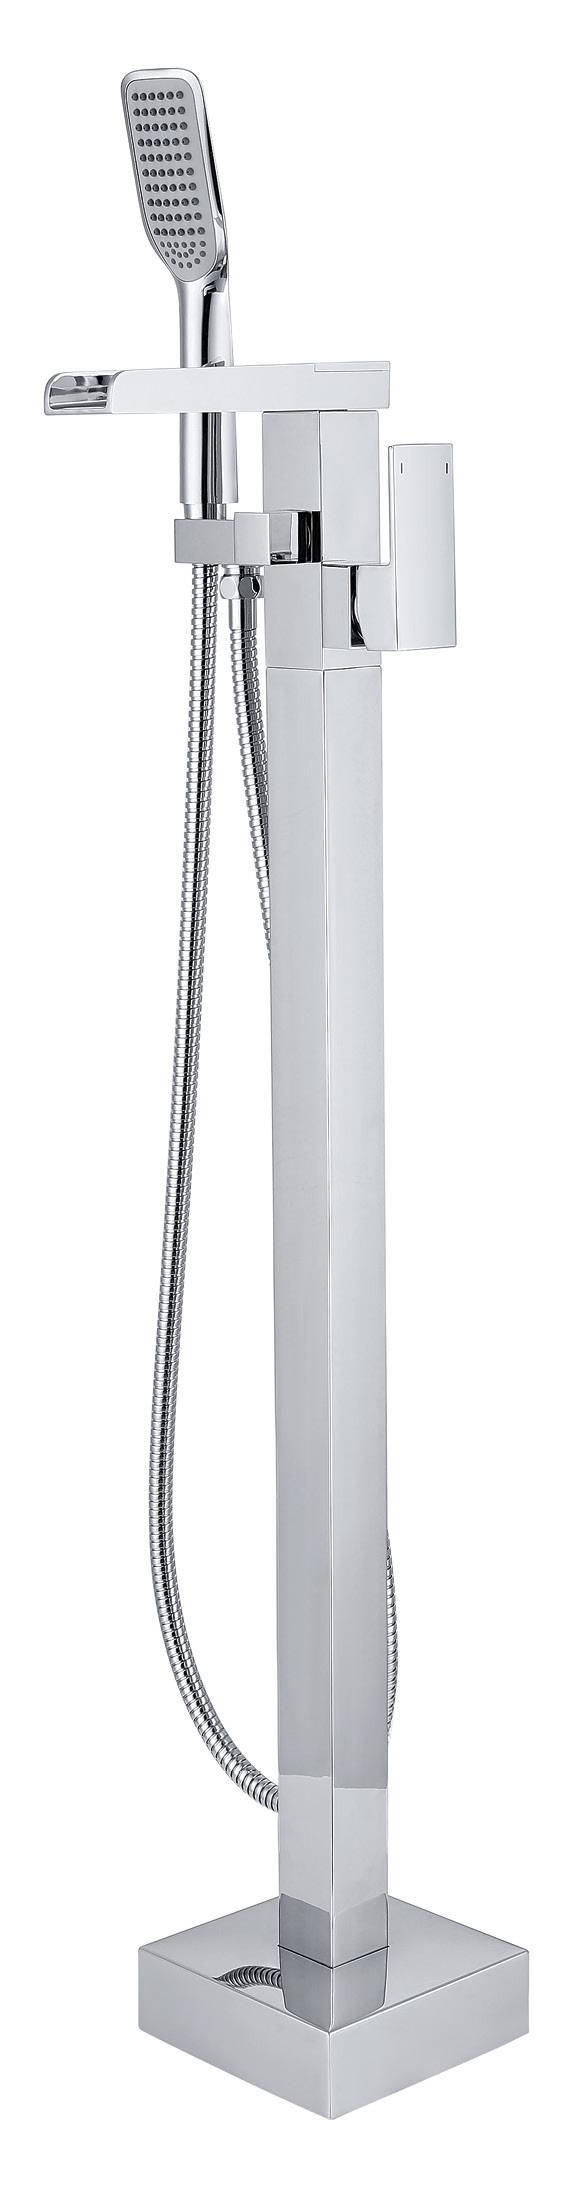 Solid Brass Contemporary Floor Standing Tub Shower Faucet with Hand Shower - Chrome Finish